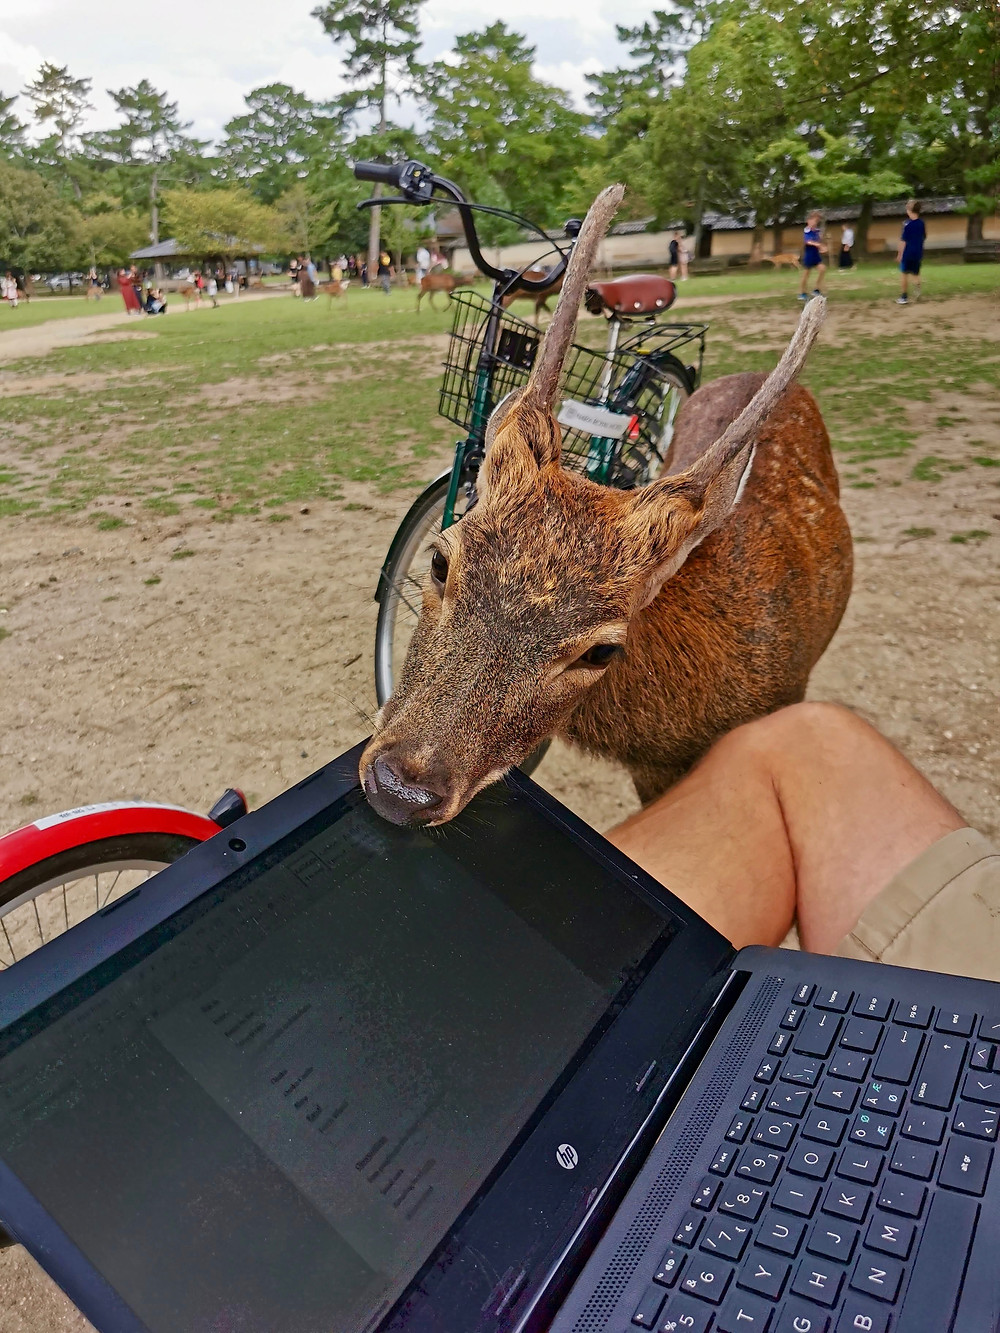 Deer in Nara is getting up close and personal